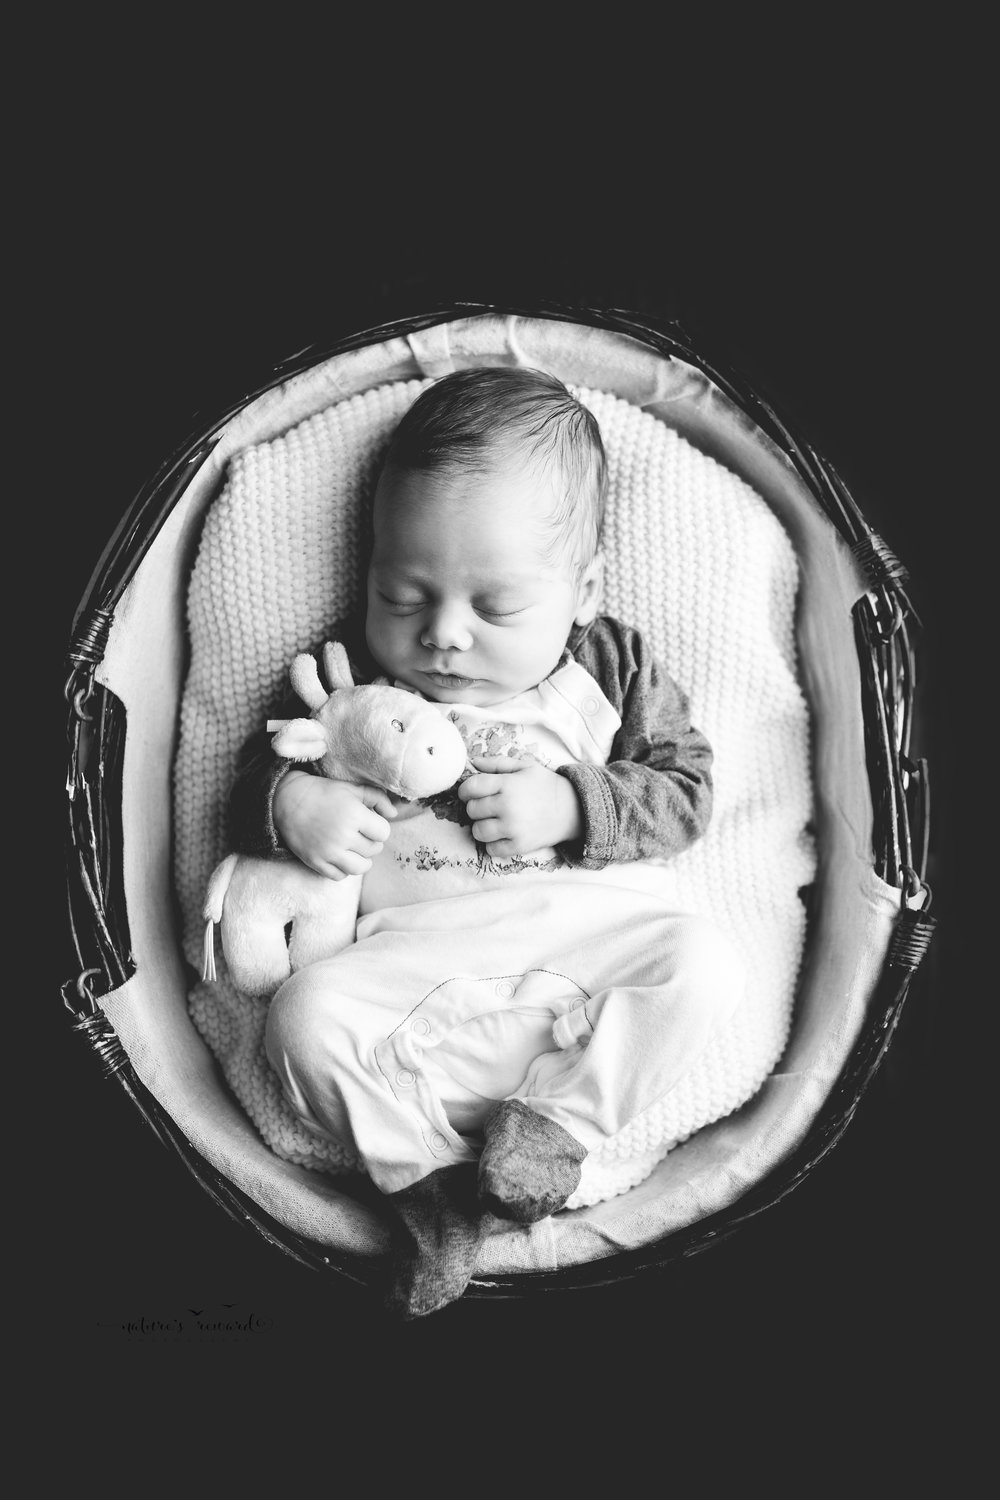 Baby Boy in this black and white fine art edit holding his special giraffe while nestled in a basket by Southern California newborn and family photographer Nature's Reward Photography